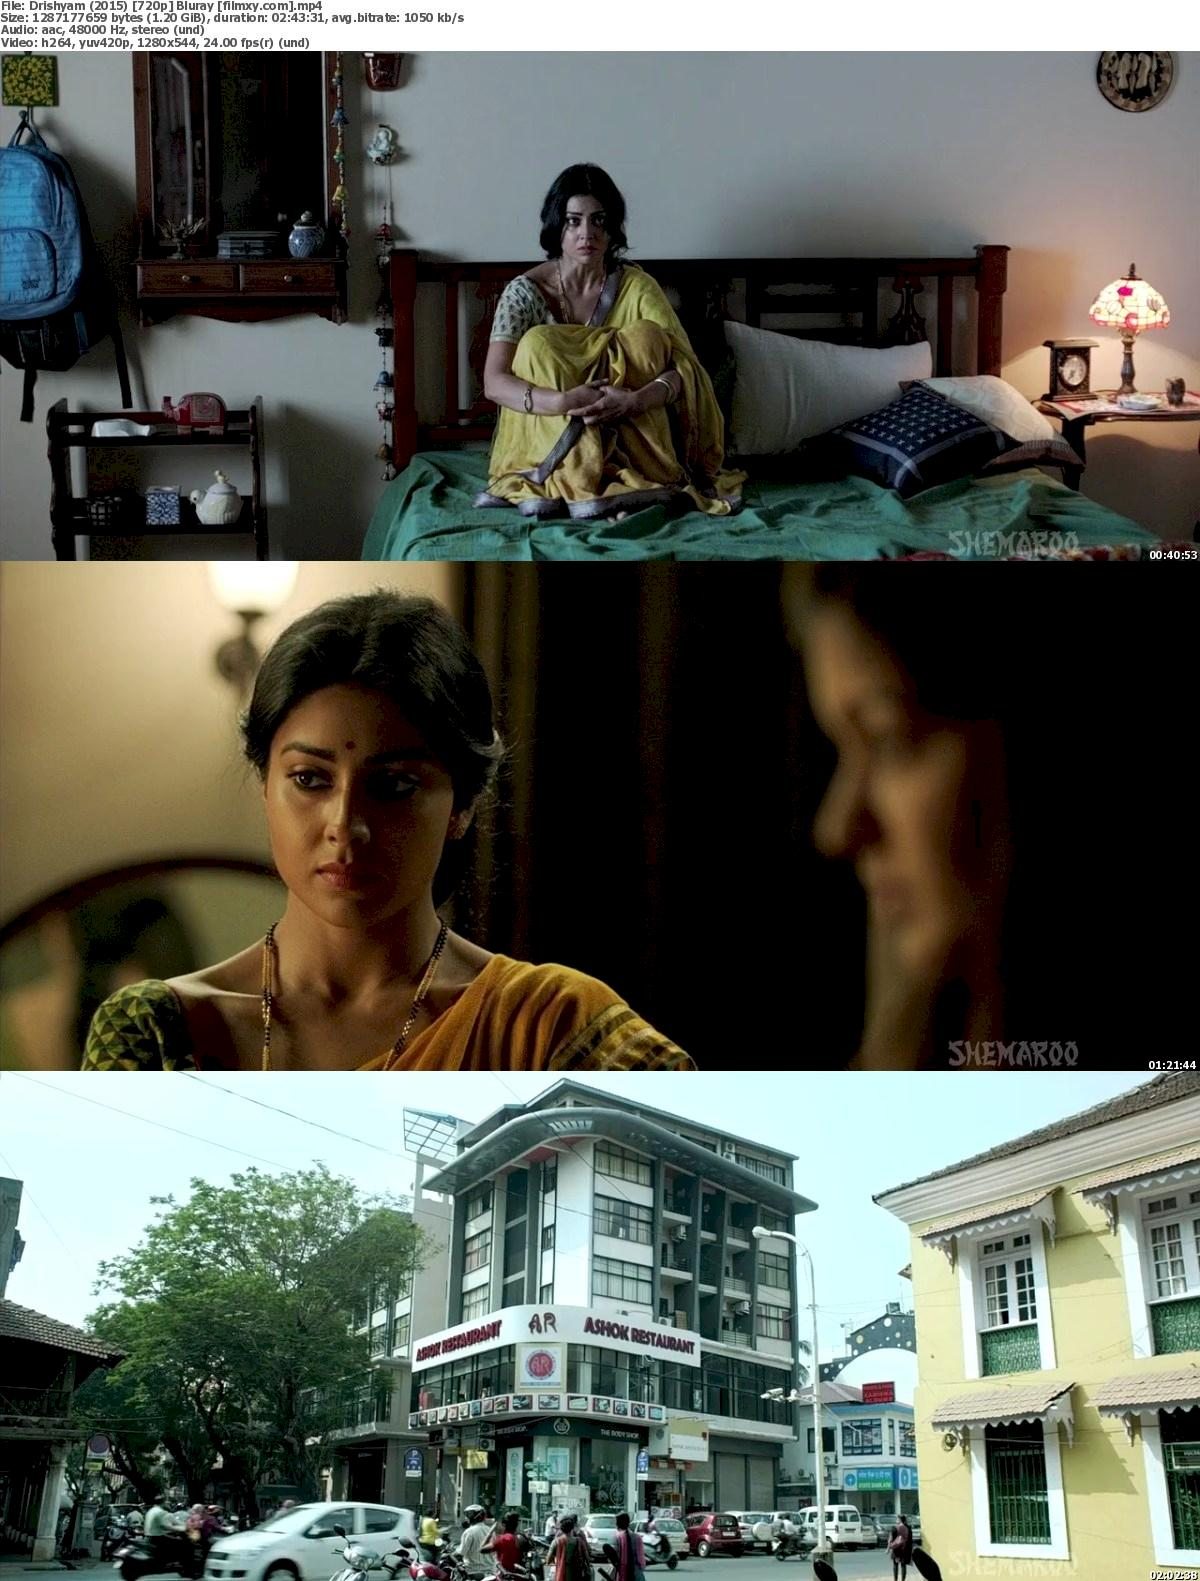 Drishyam (2015) 720p & 1080p Bluray Free Download 720p Screenshot